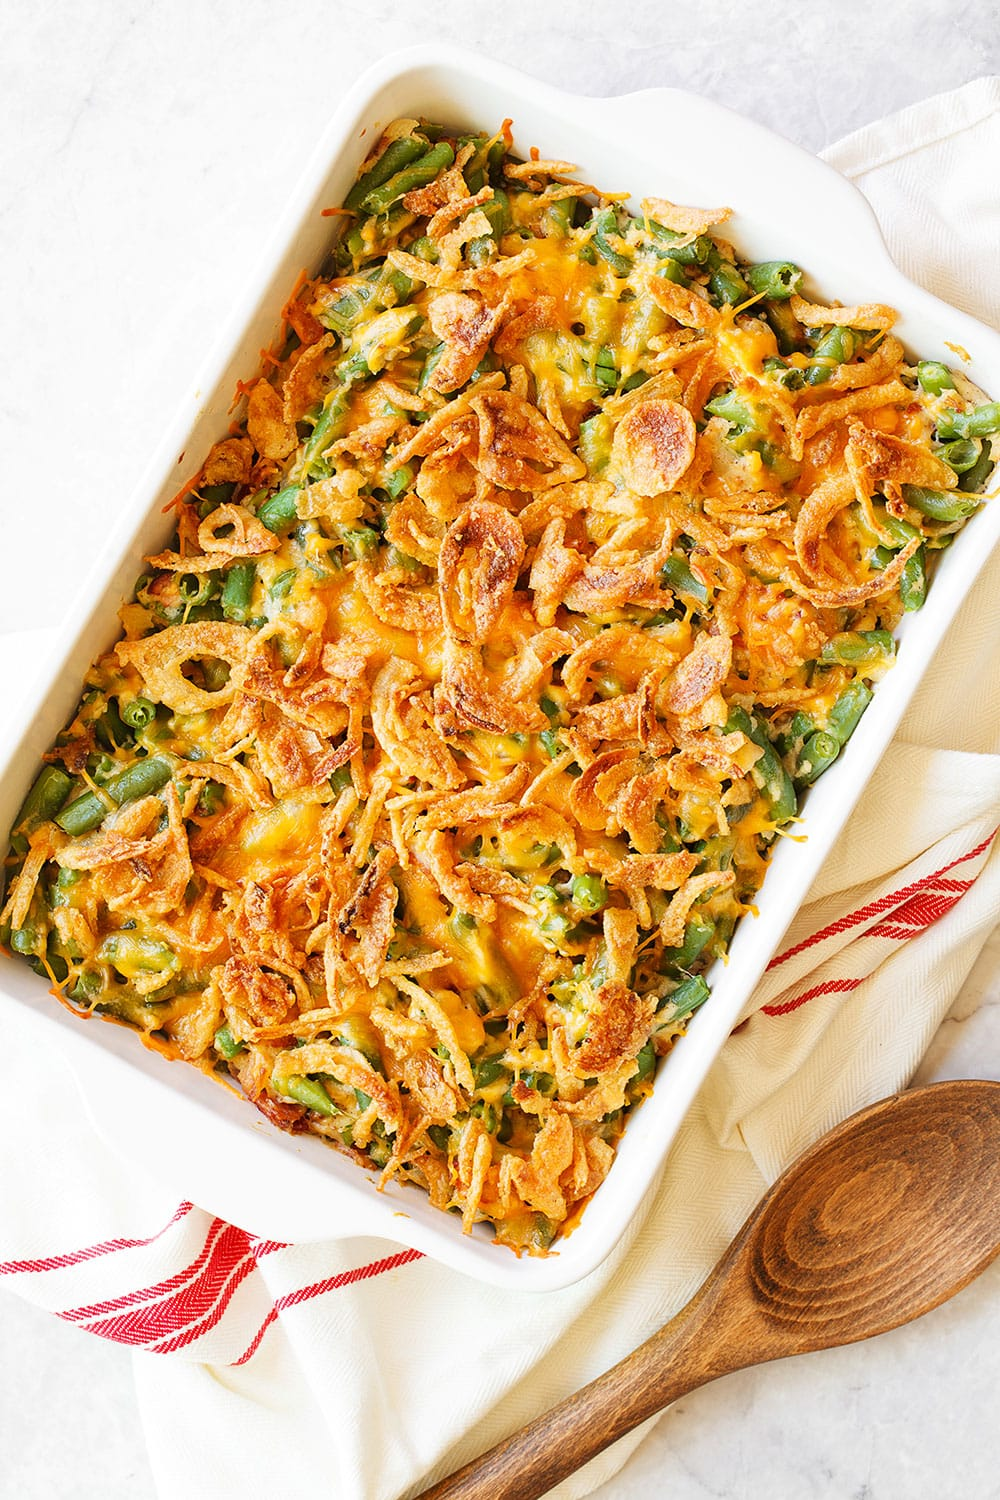 Cheesy Green Bean Casserole with Bacon is bursting with so many mouthwatering savory flavors, you'll never want make regular green bean casserole again! Best of all, there's no canned condensed soup!